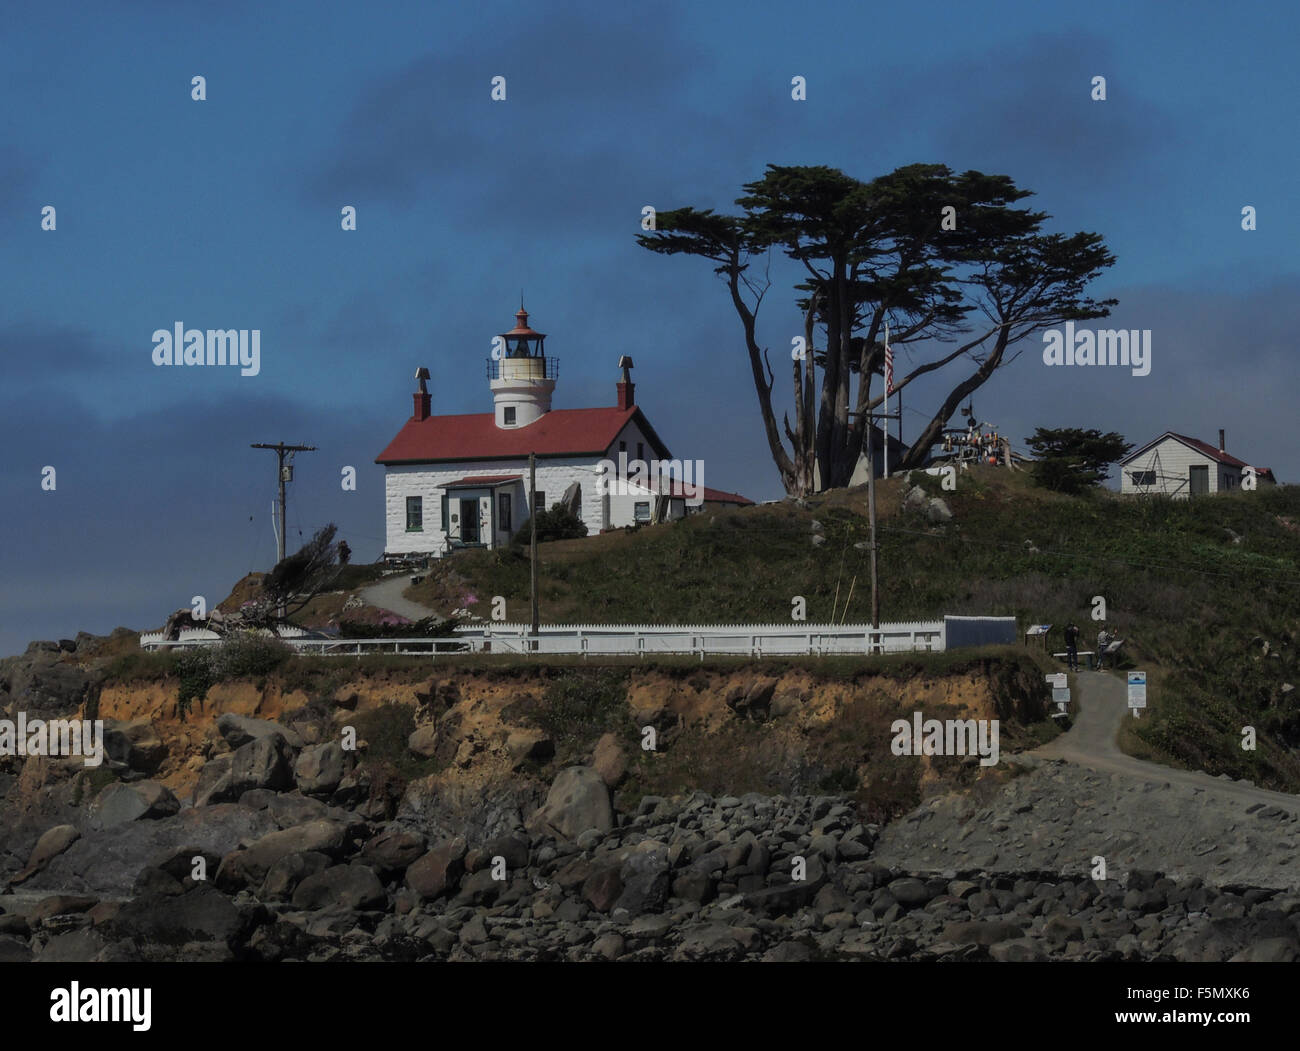 Historic (1856) Battery Point Lighthouse, Crescent City, California, Pacific Coast. - Stock Image